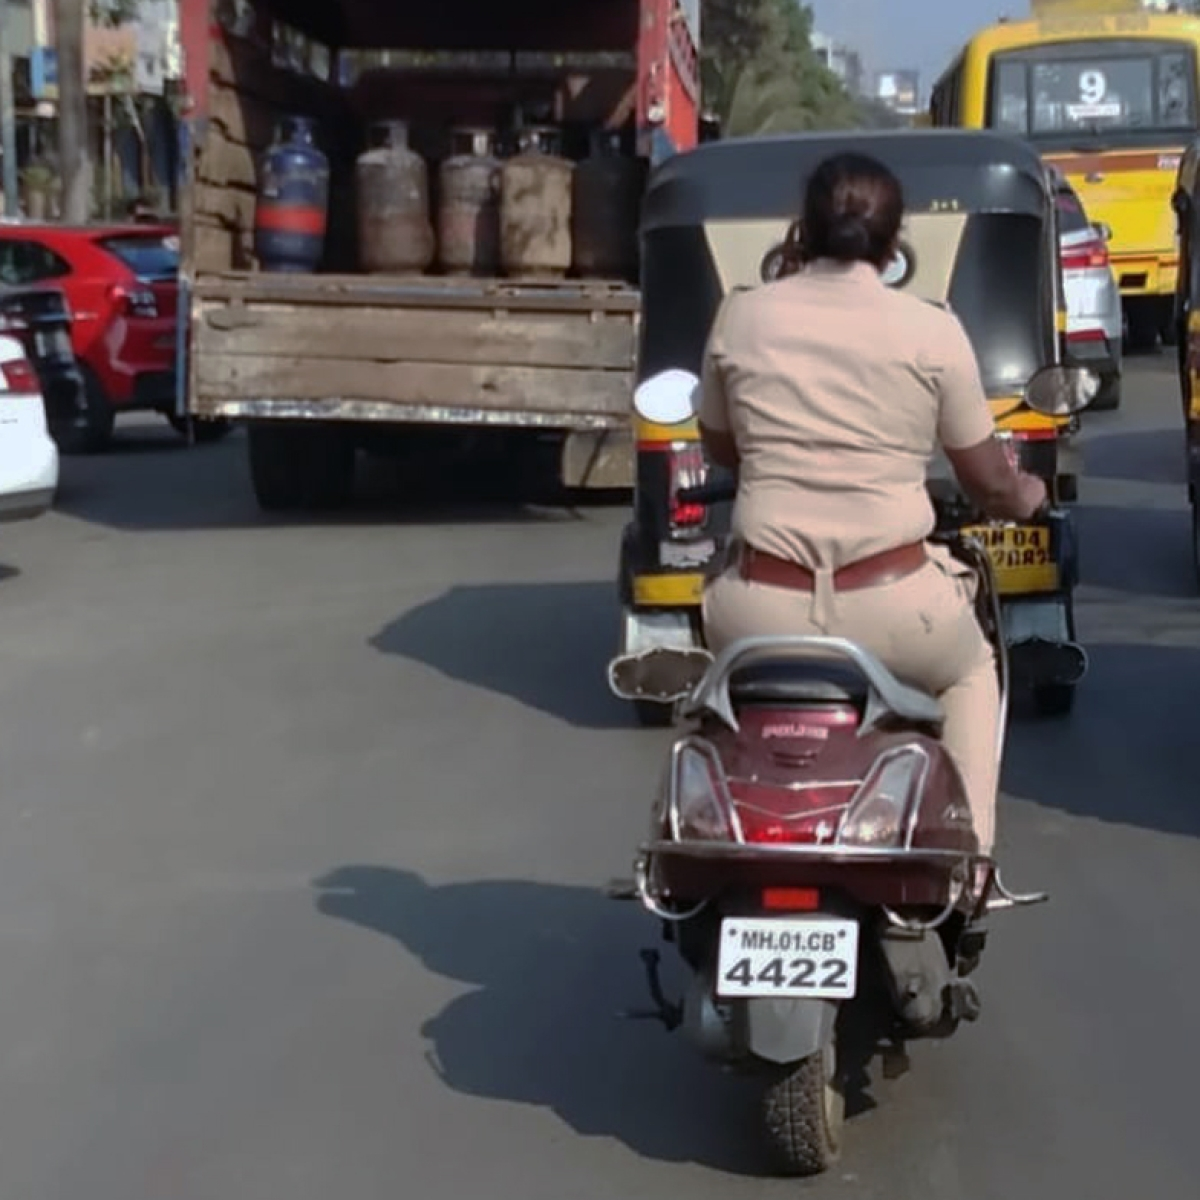 Policing the Police: Caught on camera, lady cop fined for helmetless riding